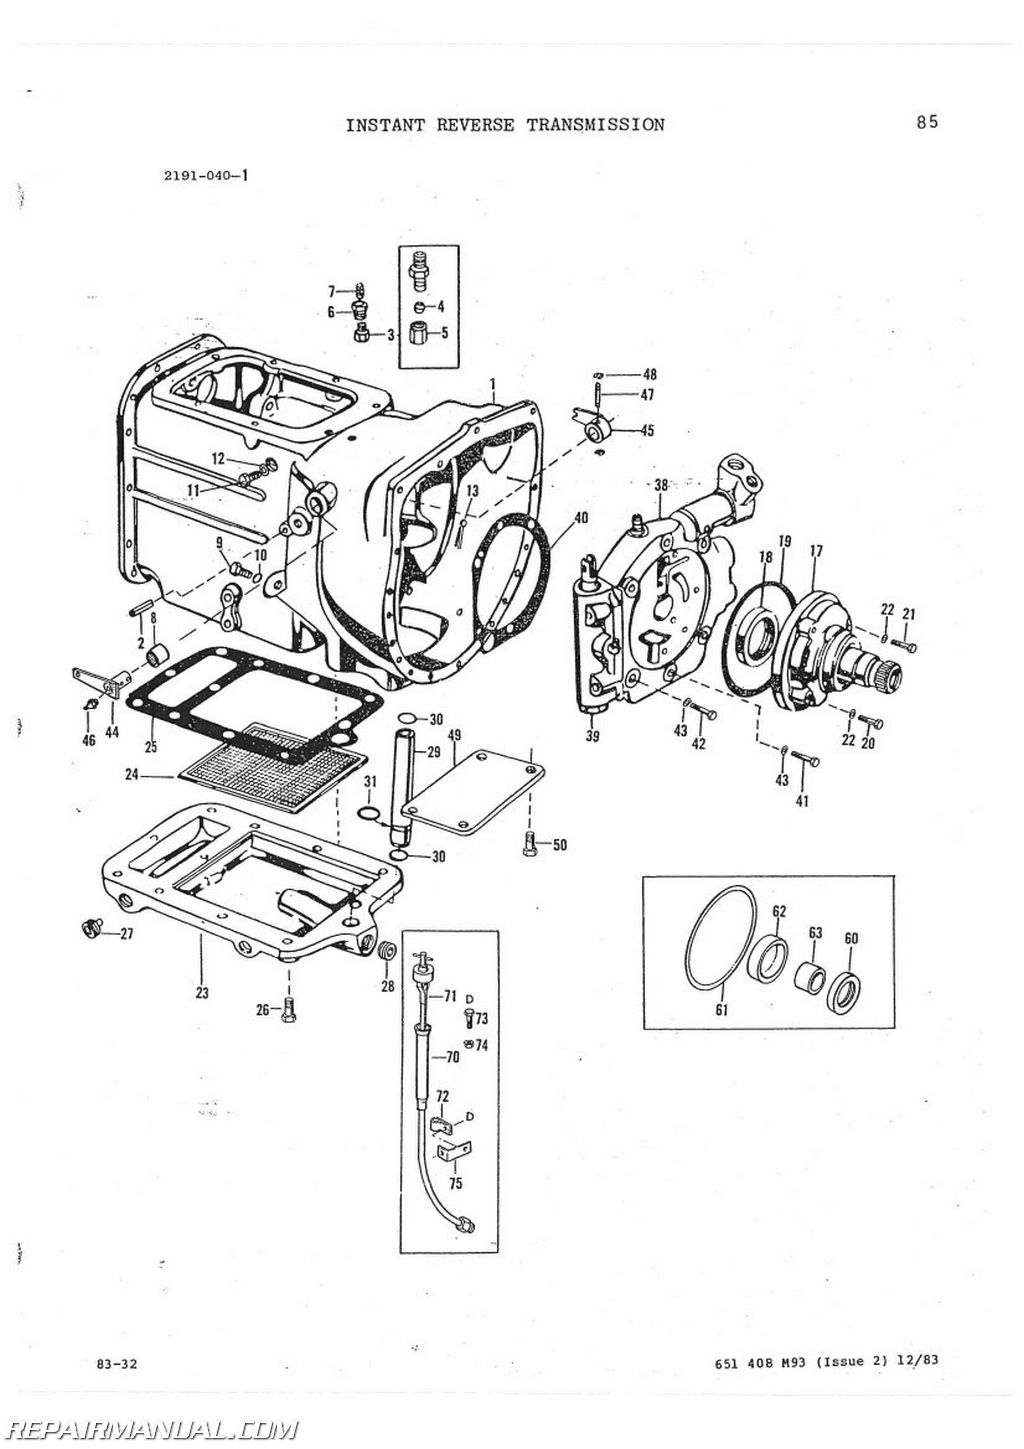 Massey Ferguson 65 Parts Diagram : Massey ferguson mf tractor loader backhoe parts manual